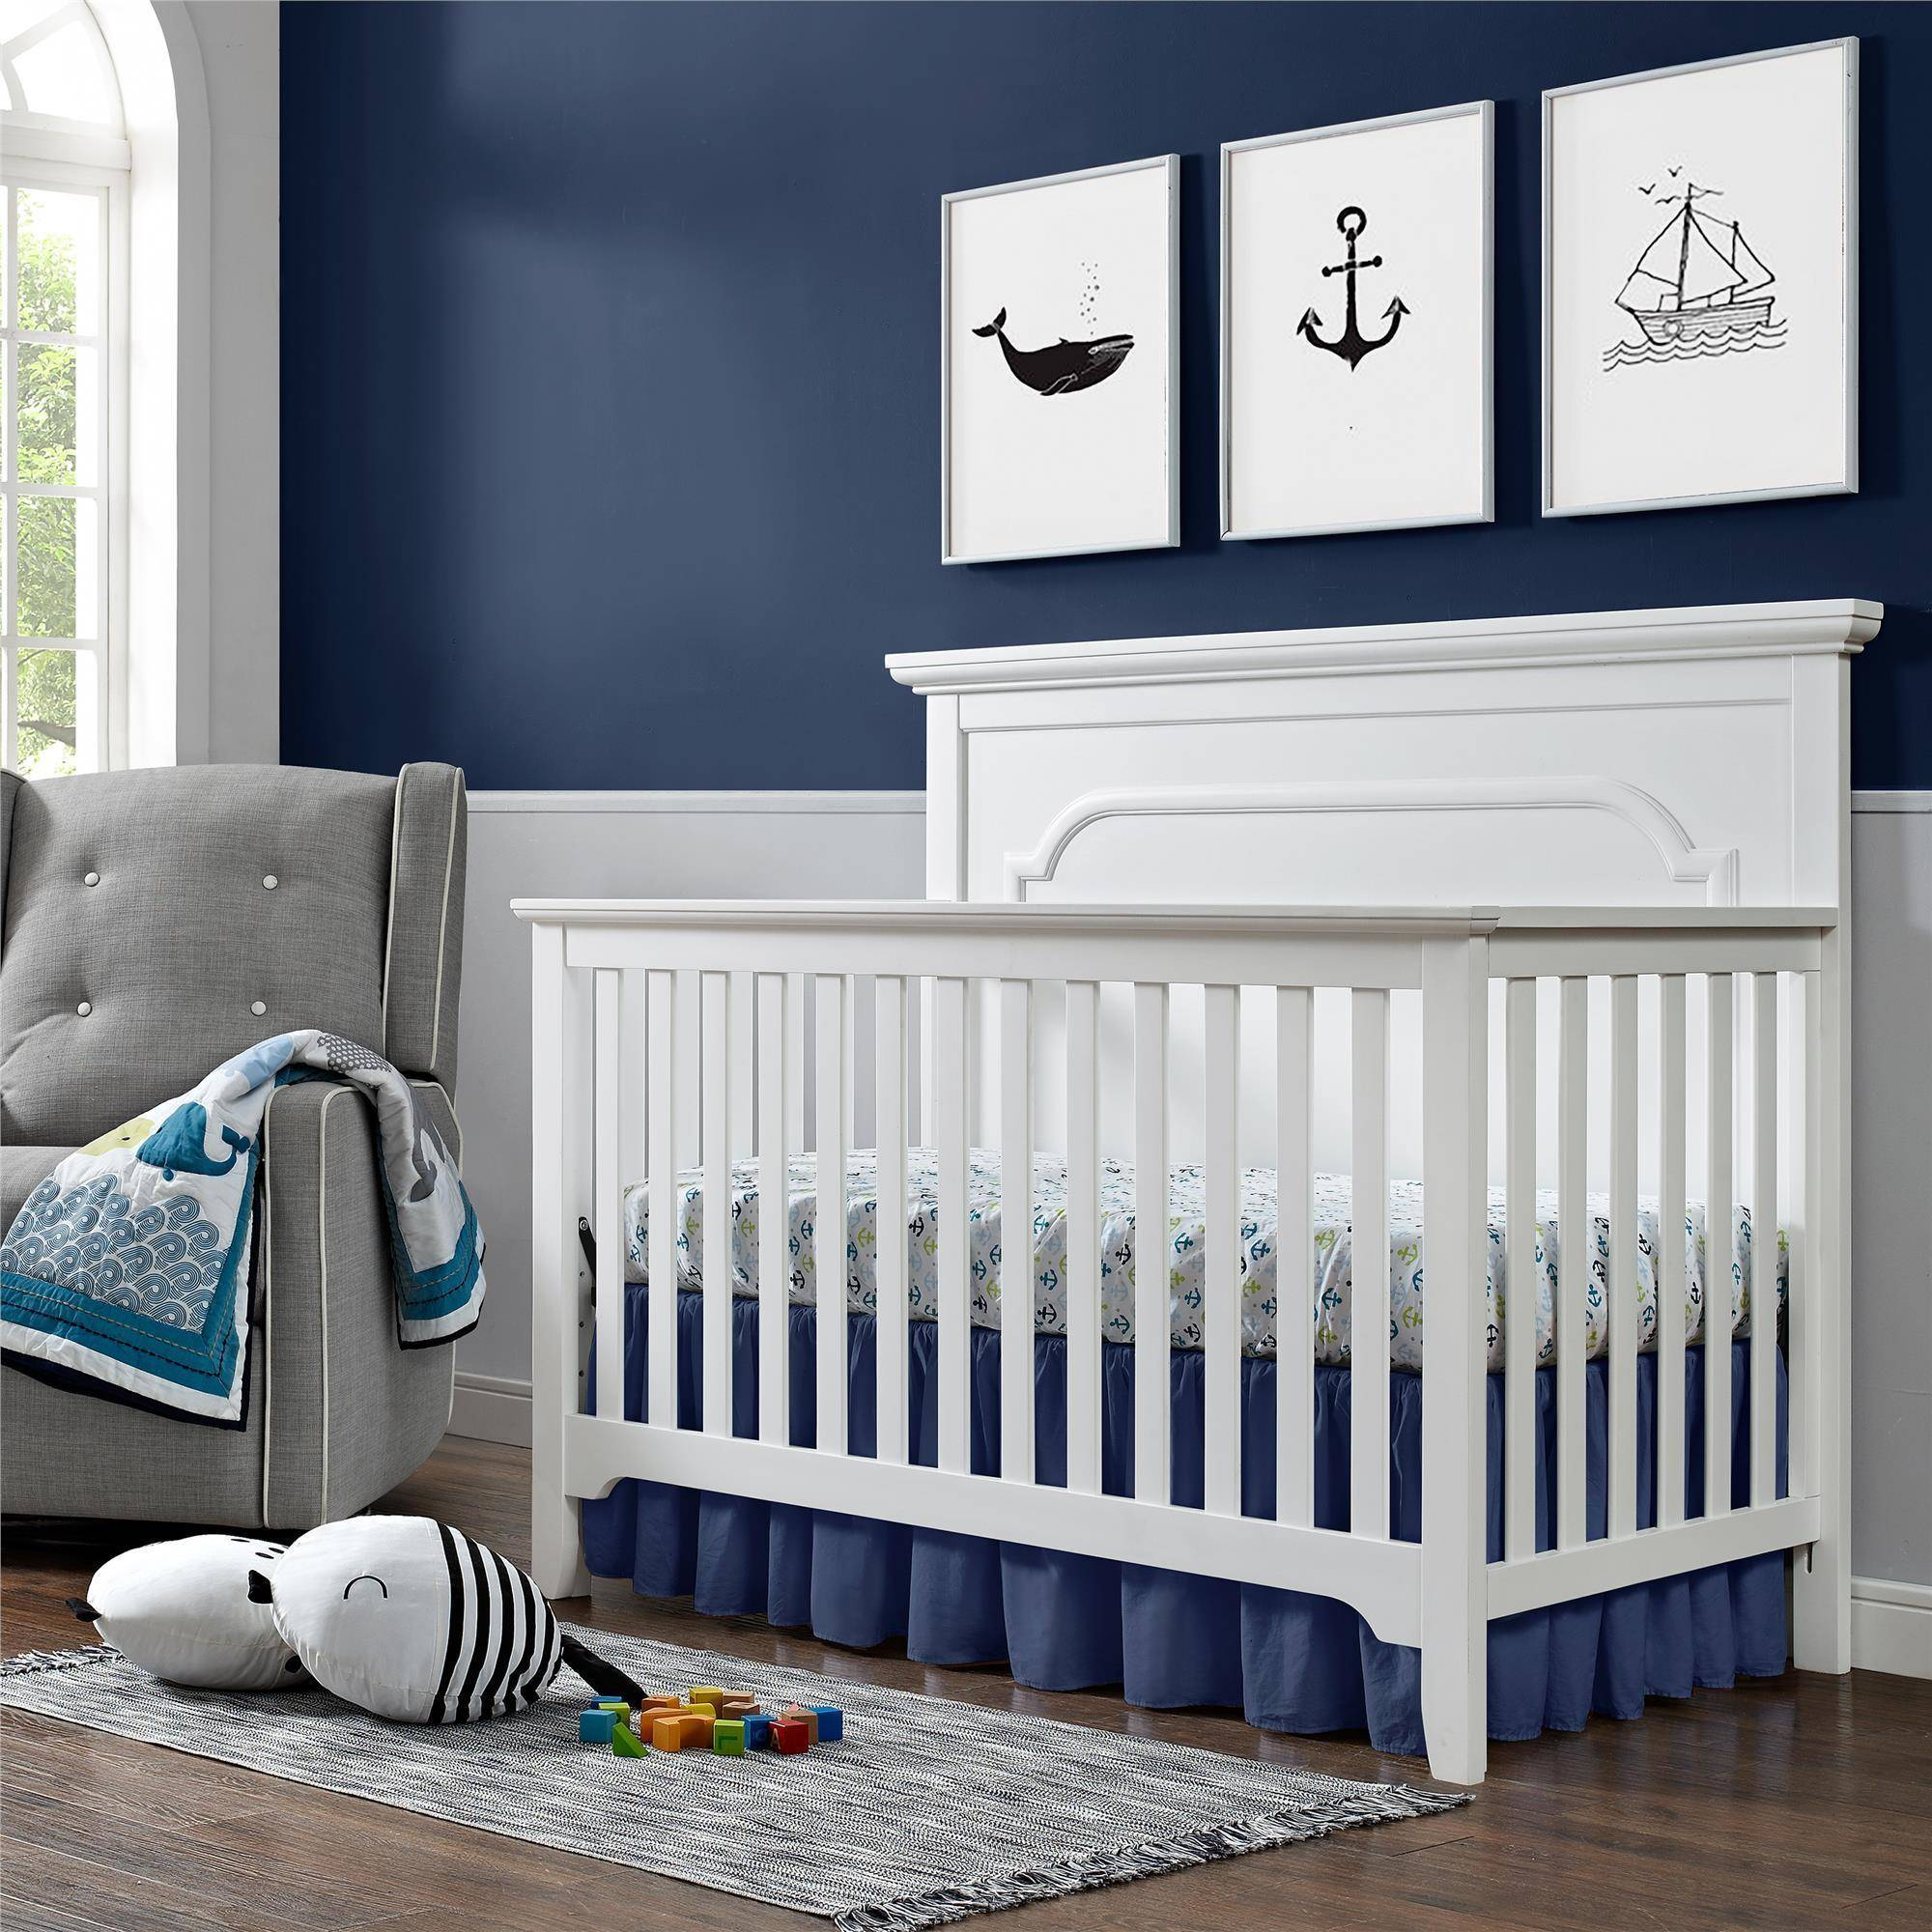 Baby Relax Ferris 4-in-1 Convertible Crib, Pure white